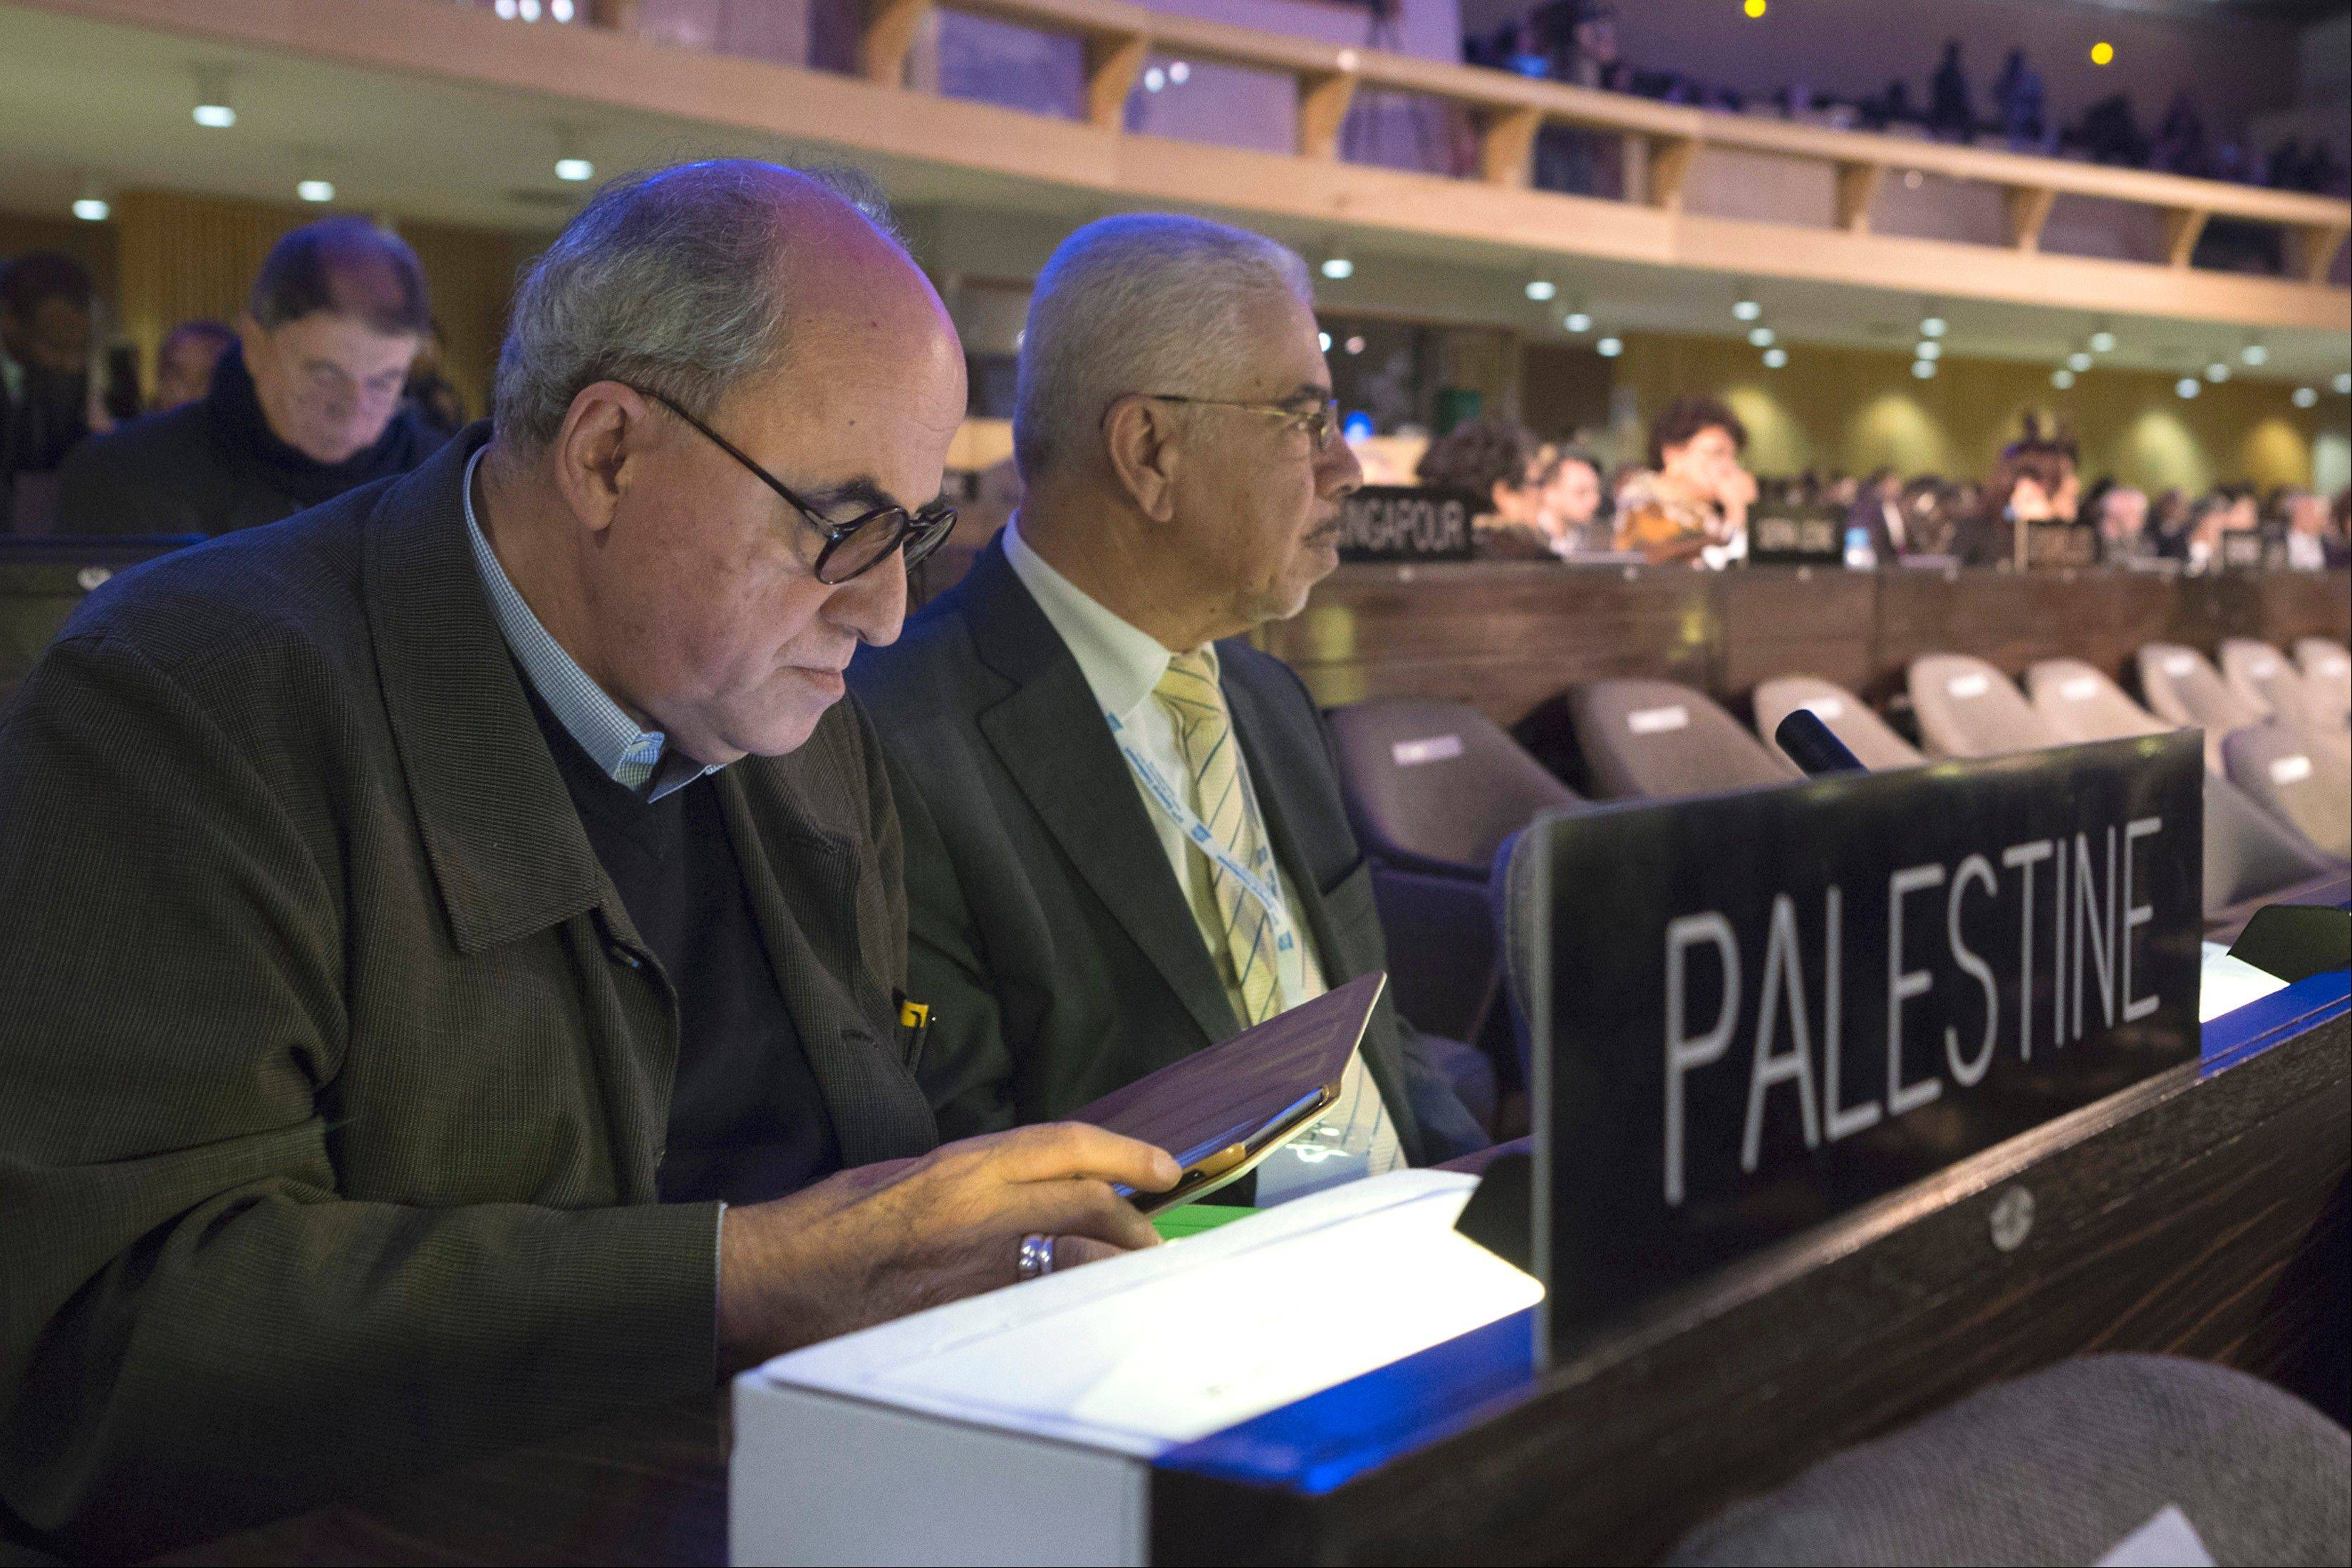 The Palestinian Ambassador to UNESCO Elias Sanbar, left, checks his tablet Friday during a session of the UNESCO General Conference in Paris. American influence in culture, science and education around the world took a high-profile blow Friday after the U.S. automatically lost voting rights at UNESCO, after missing a crucial deadline to repay its debt to the world�s cultural agency.